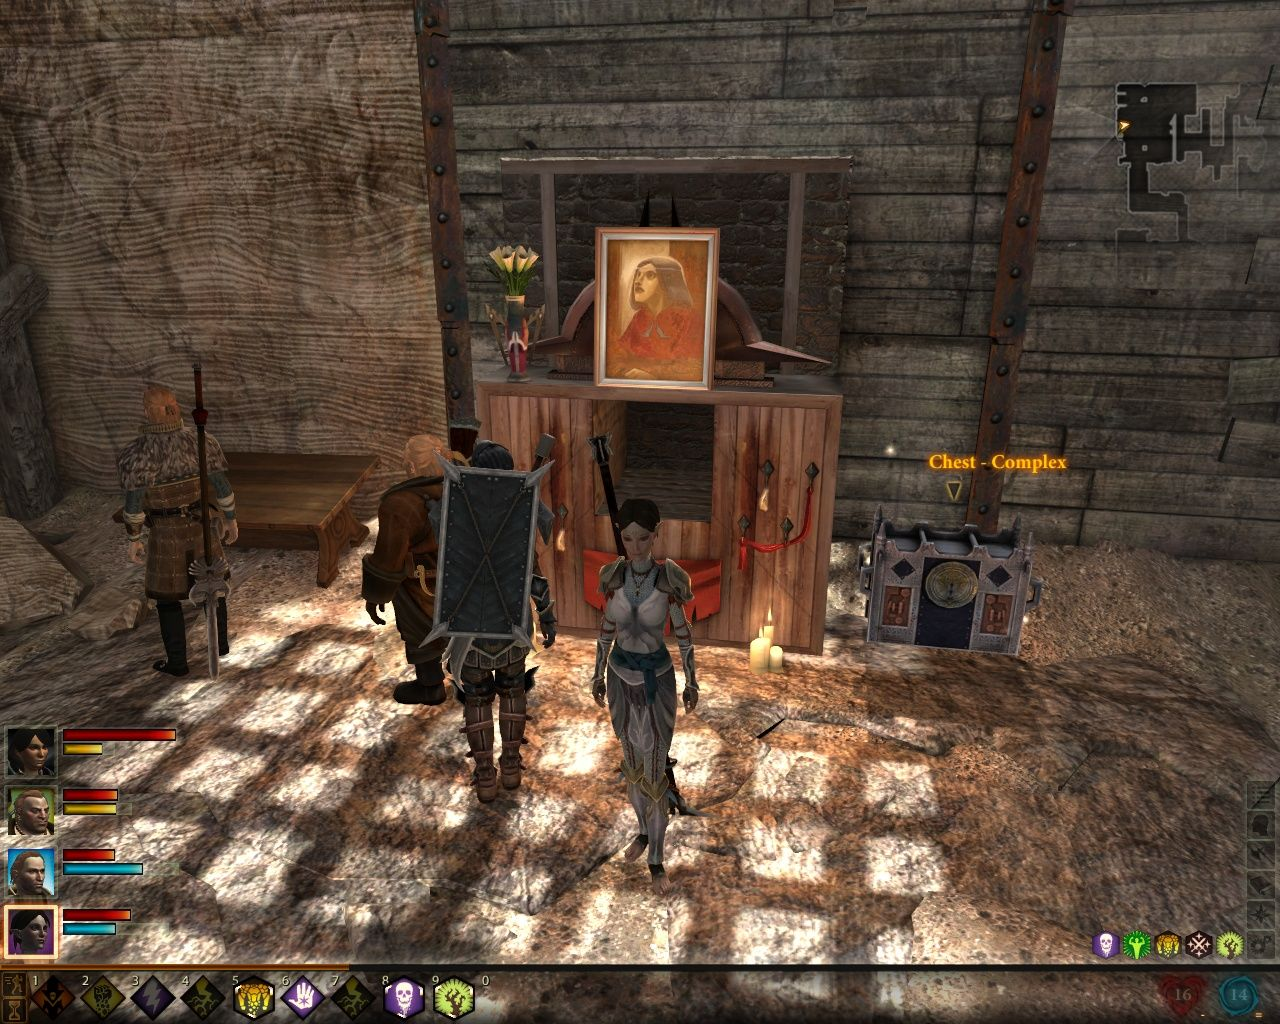 Dragon Age II Windows This quest involves investigating serial murders of women.  You can see a chest with a difficulty level on it. You can also see Merrill in a new outfit - companions get them after completing a romance